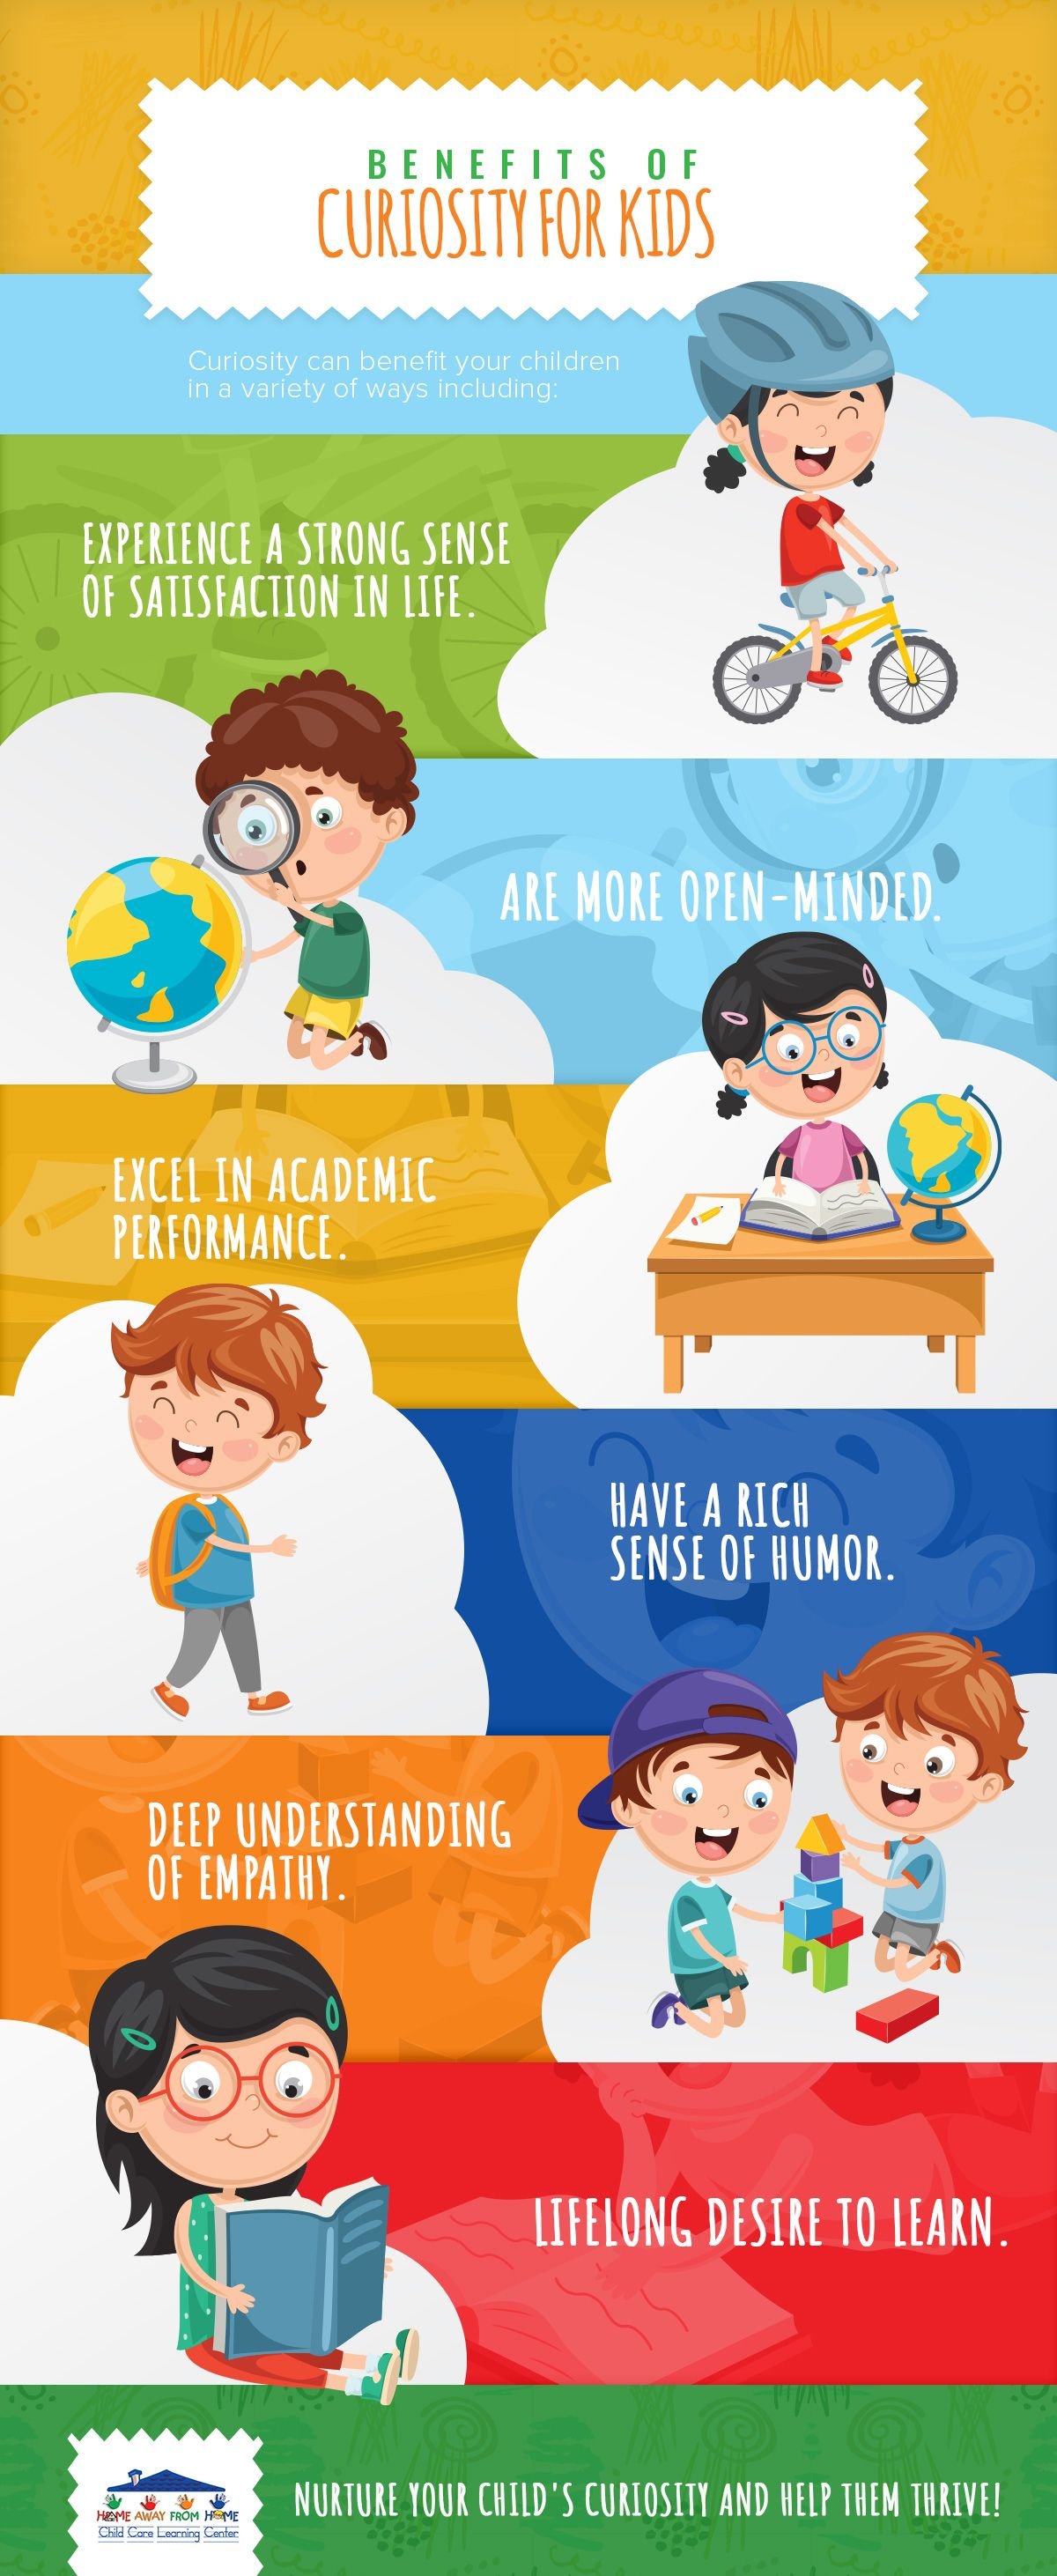 Benefits of Curiosity for Kids Infographic